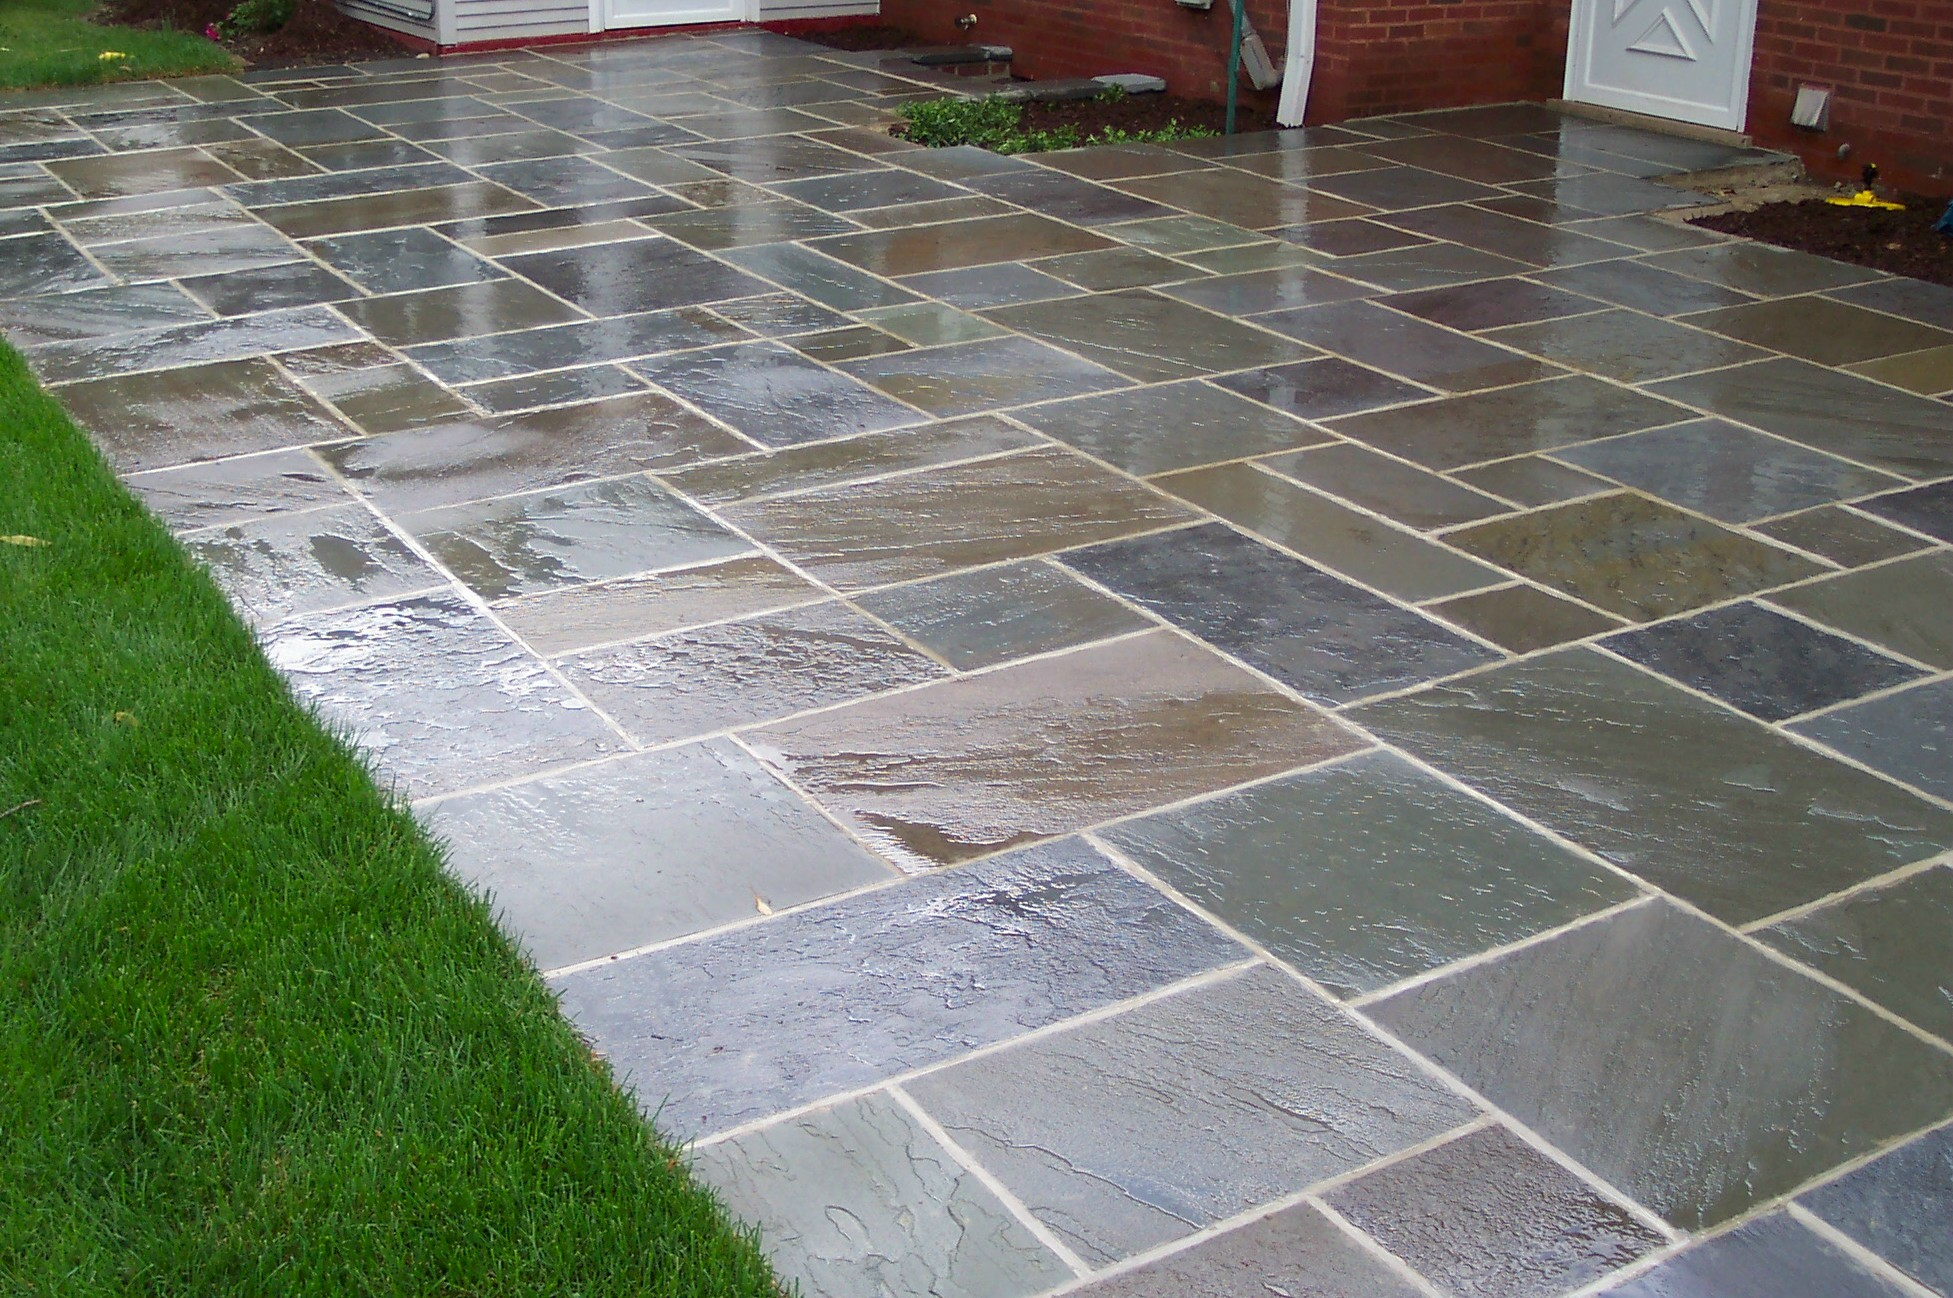 Superbe Bluestone Patio Patterns